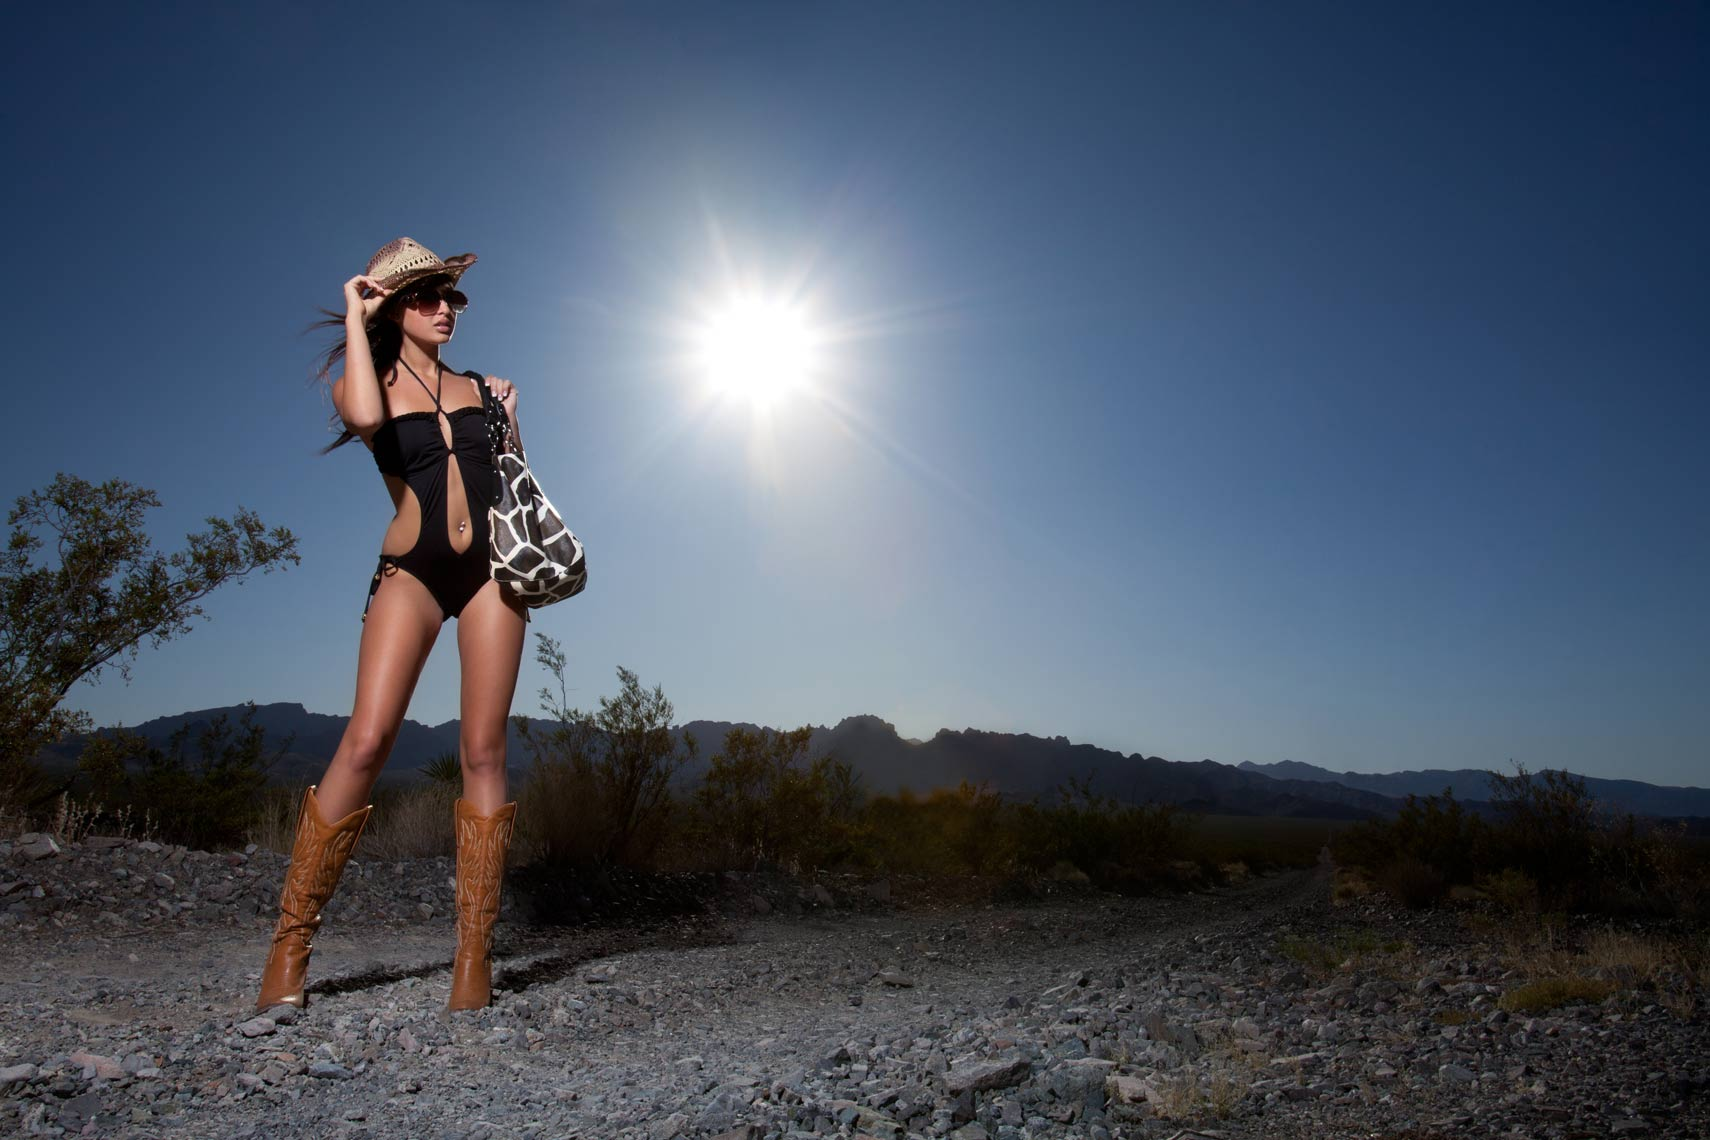 shelby_desert_fashion_01